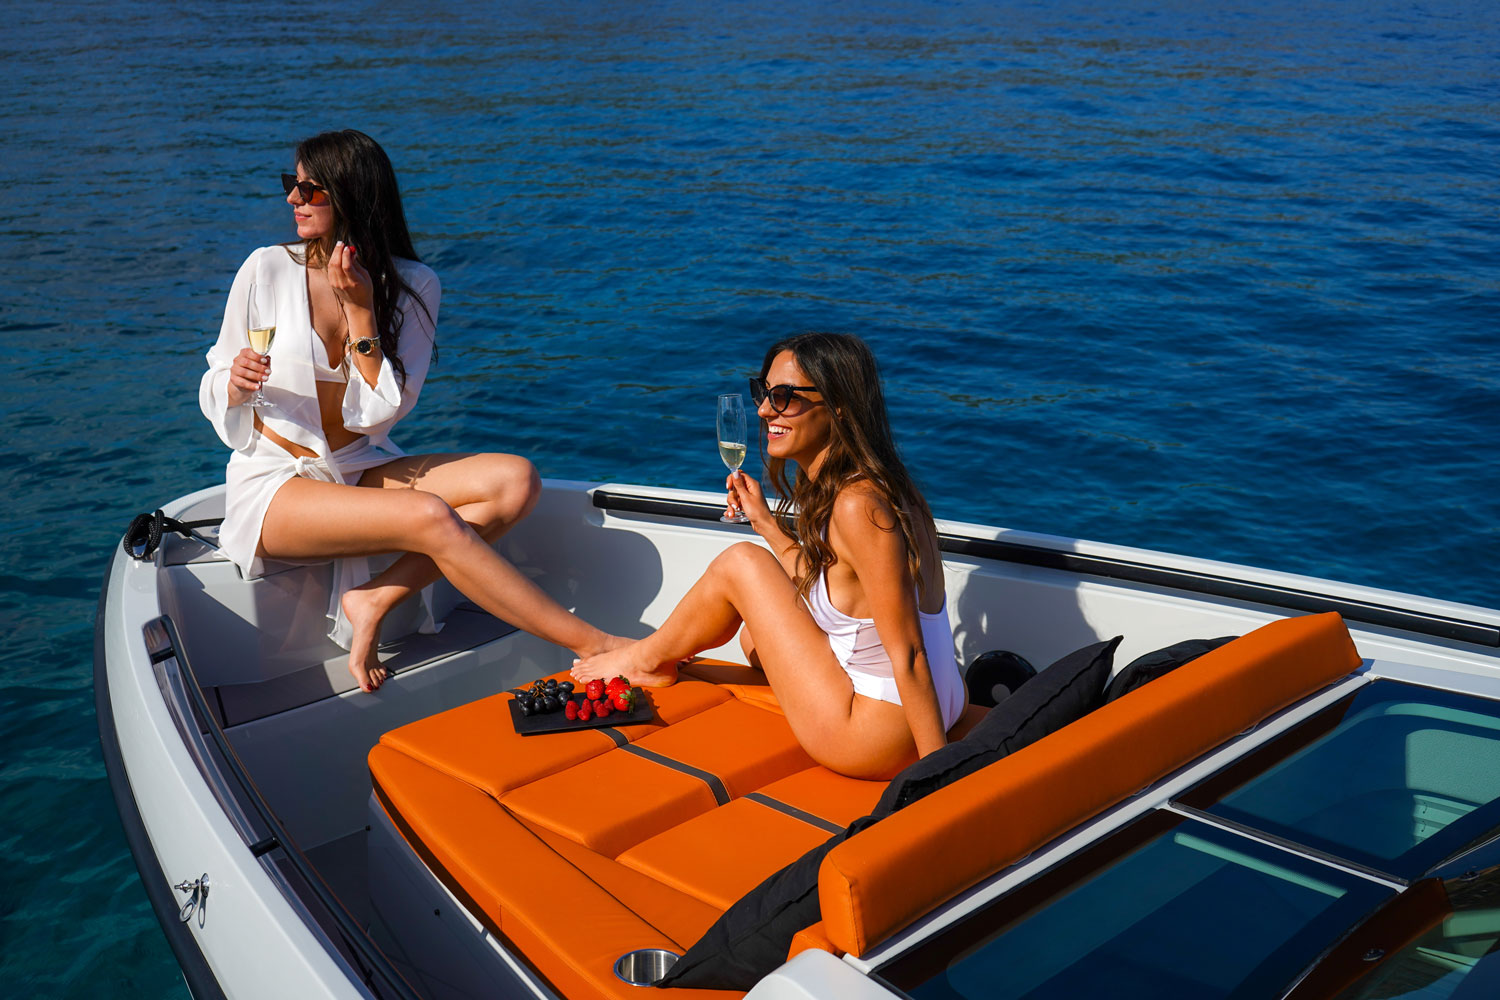 Saxdor 320 GTO cruise in style with power and comfort  image 2